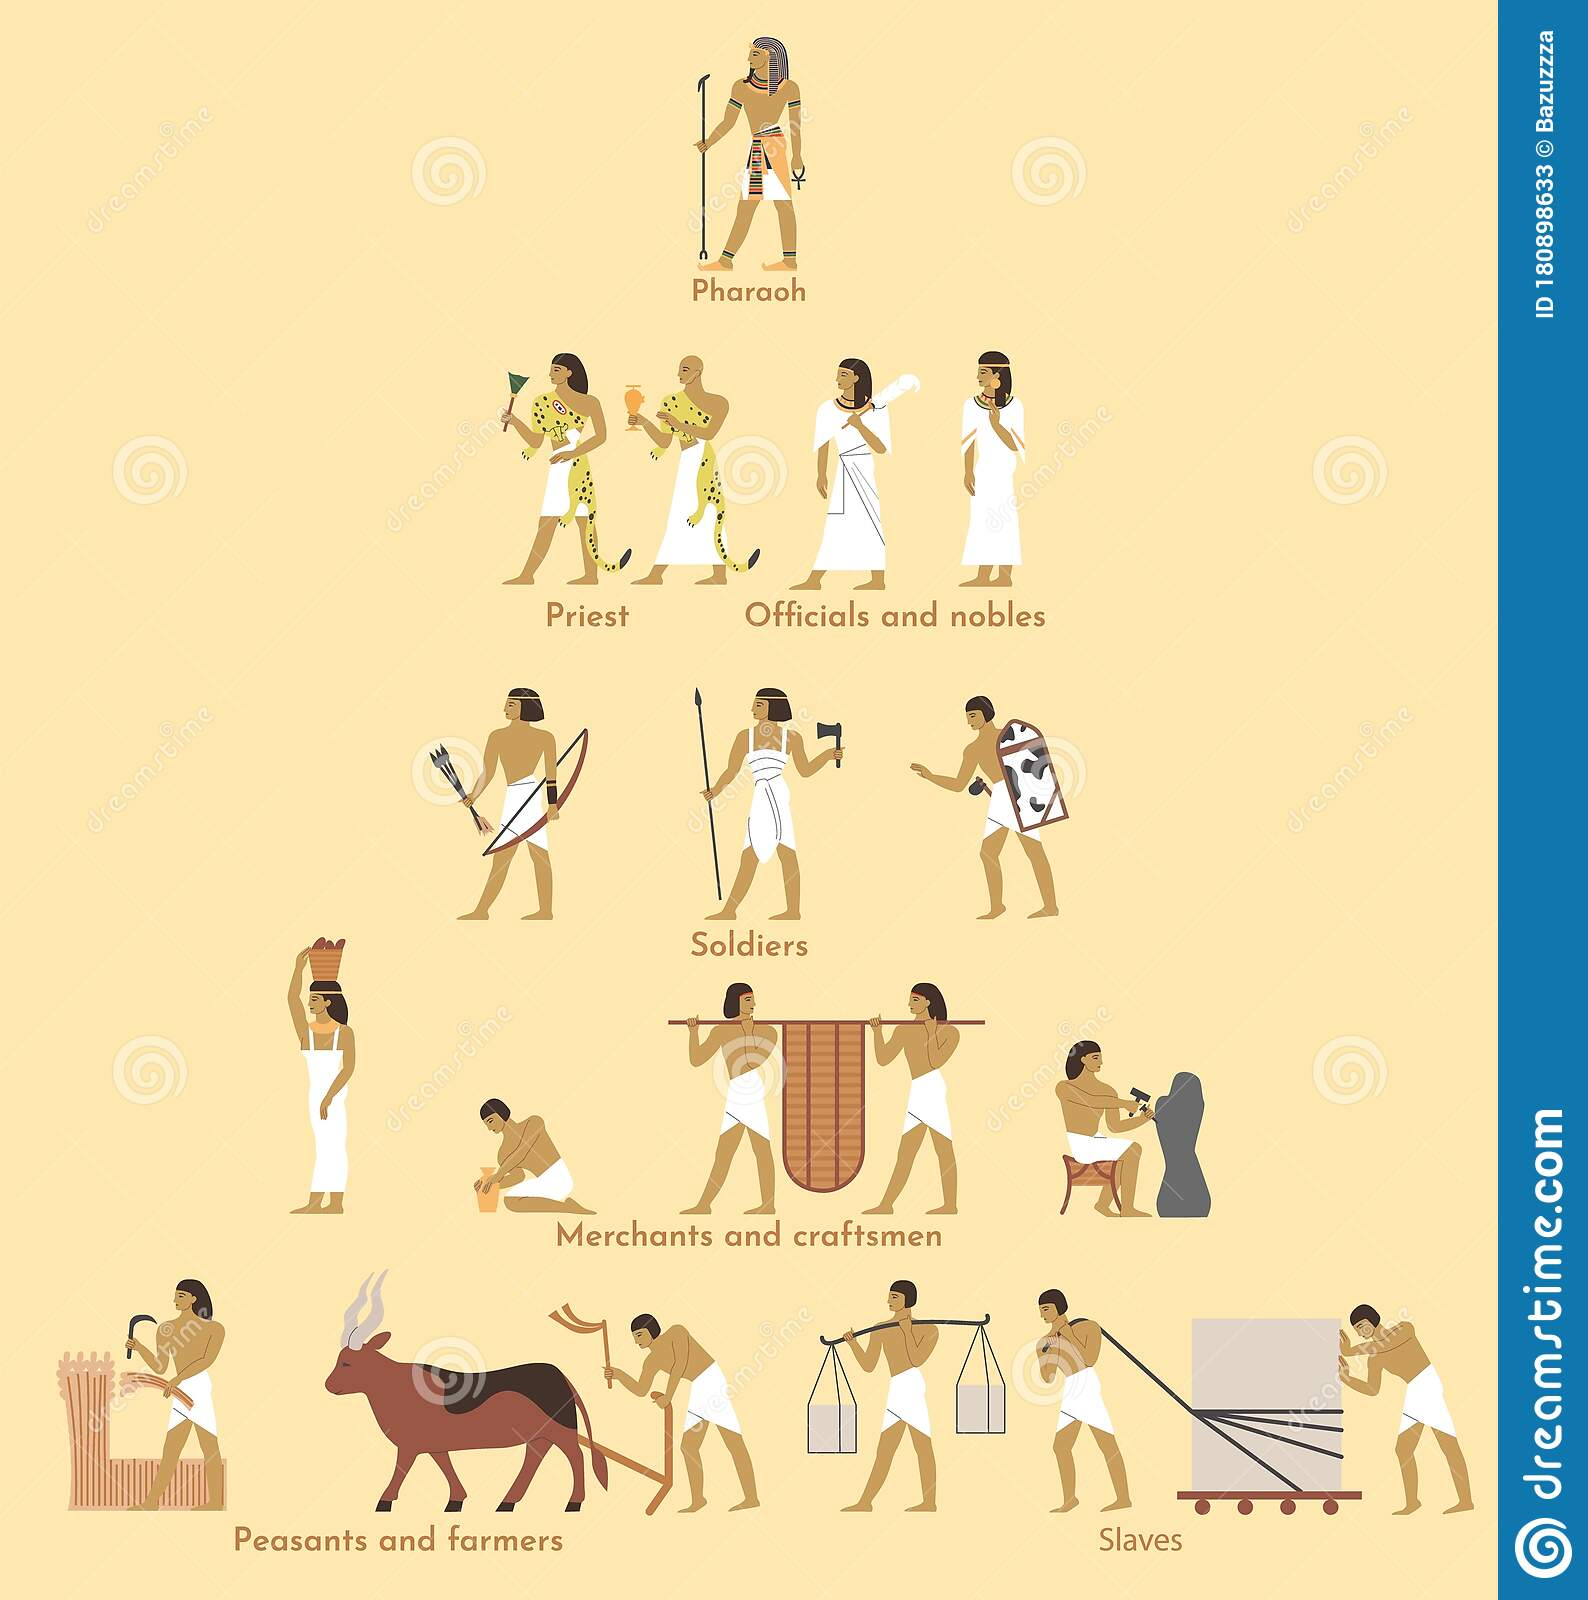 Ancient Egypt Social Structure Pyramid Vector Flat